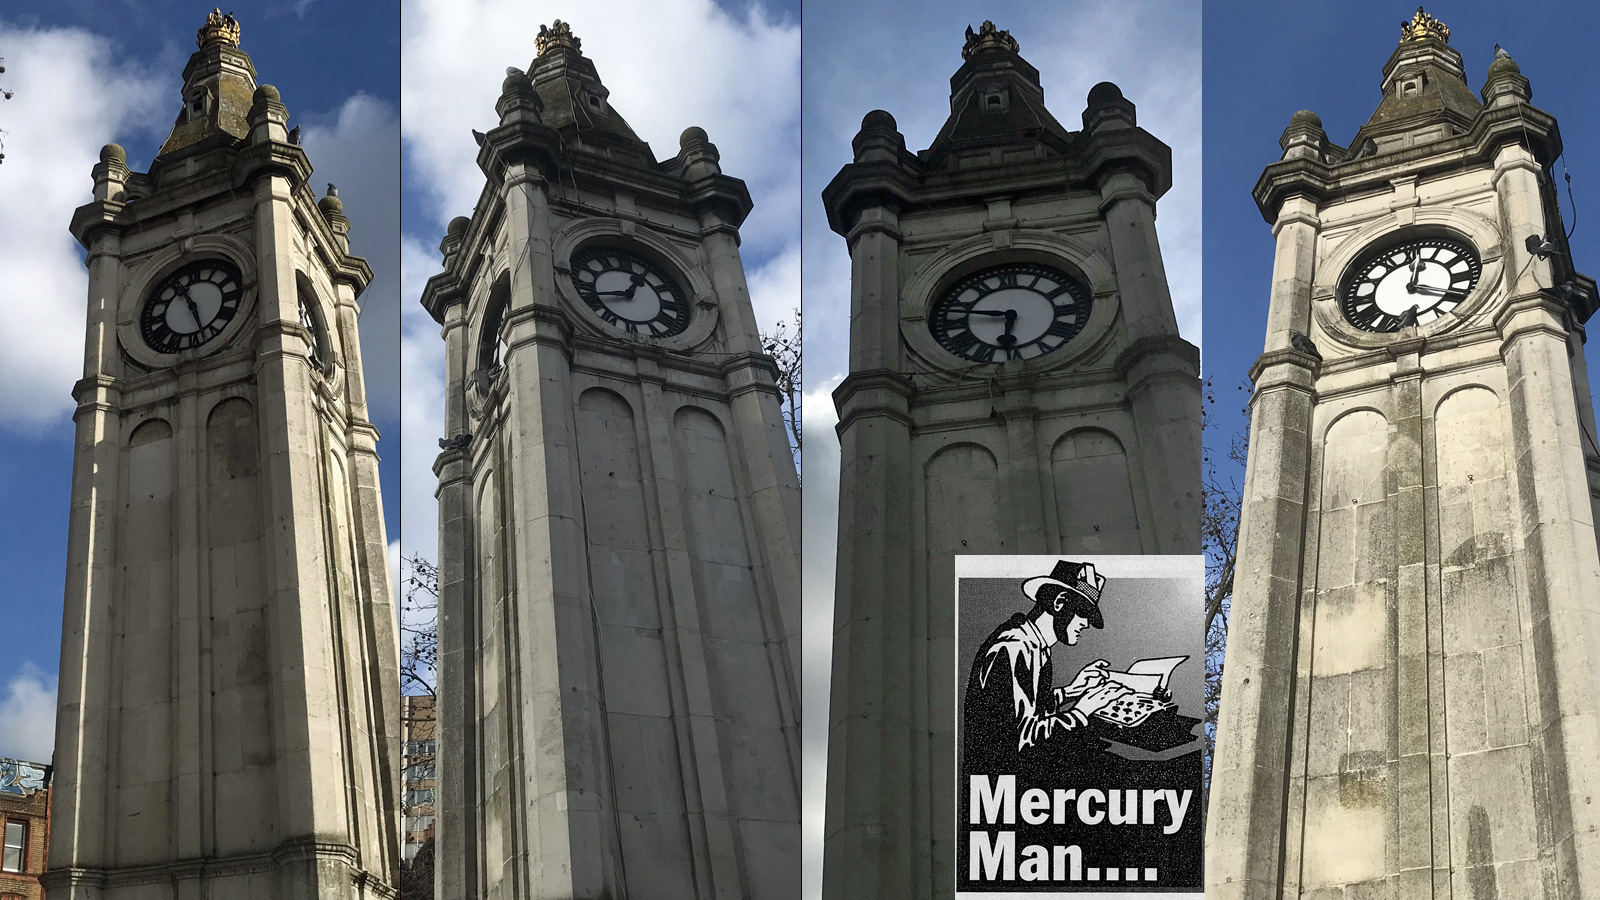 Show some love for Lewisham – get its clock tower working again